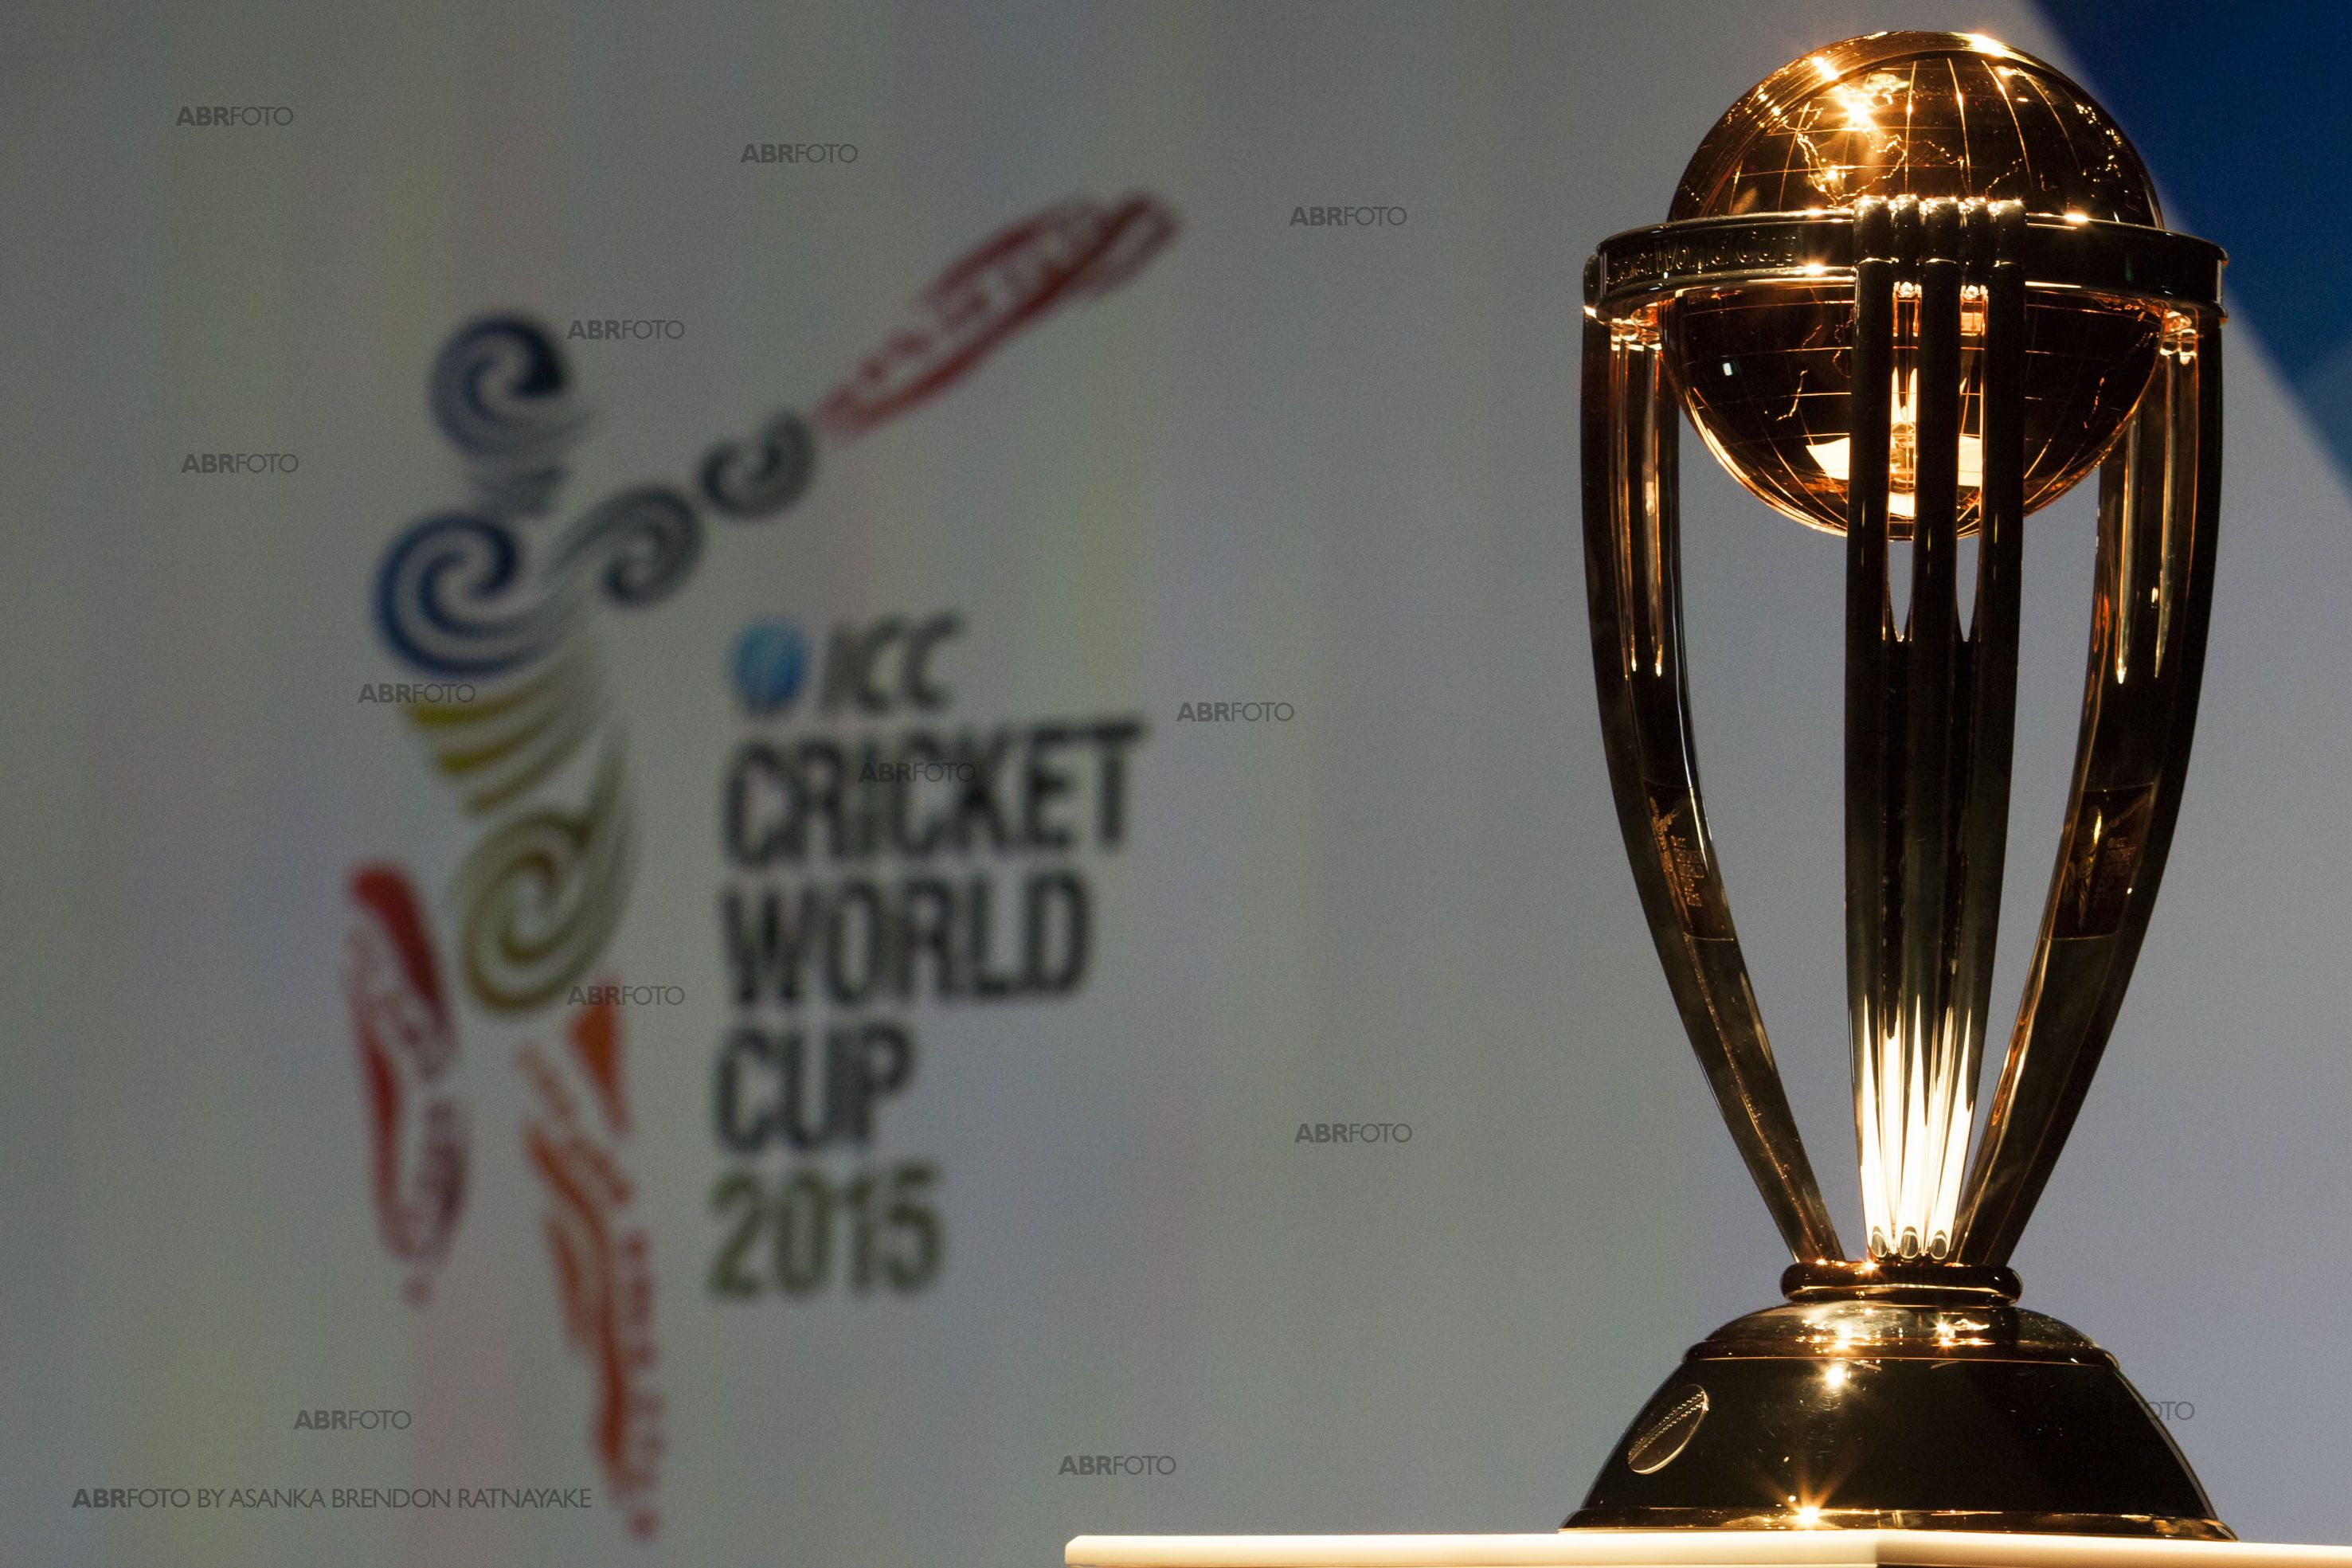 Pin On Icc Cricket World Cup 2015